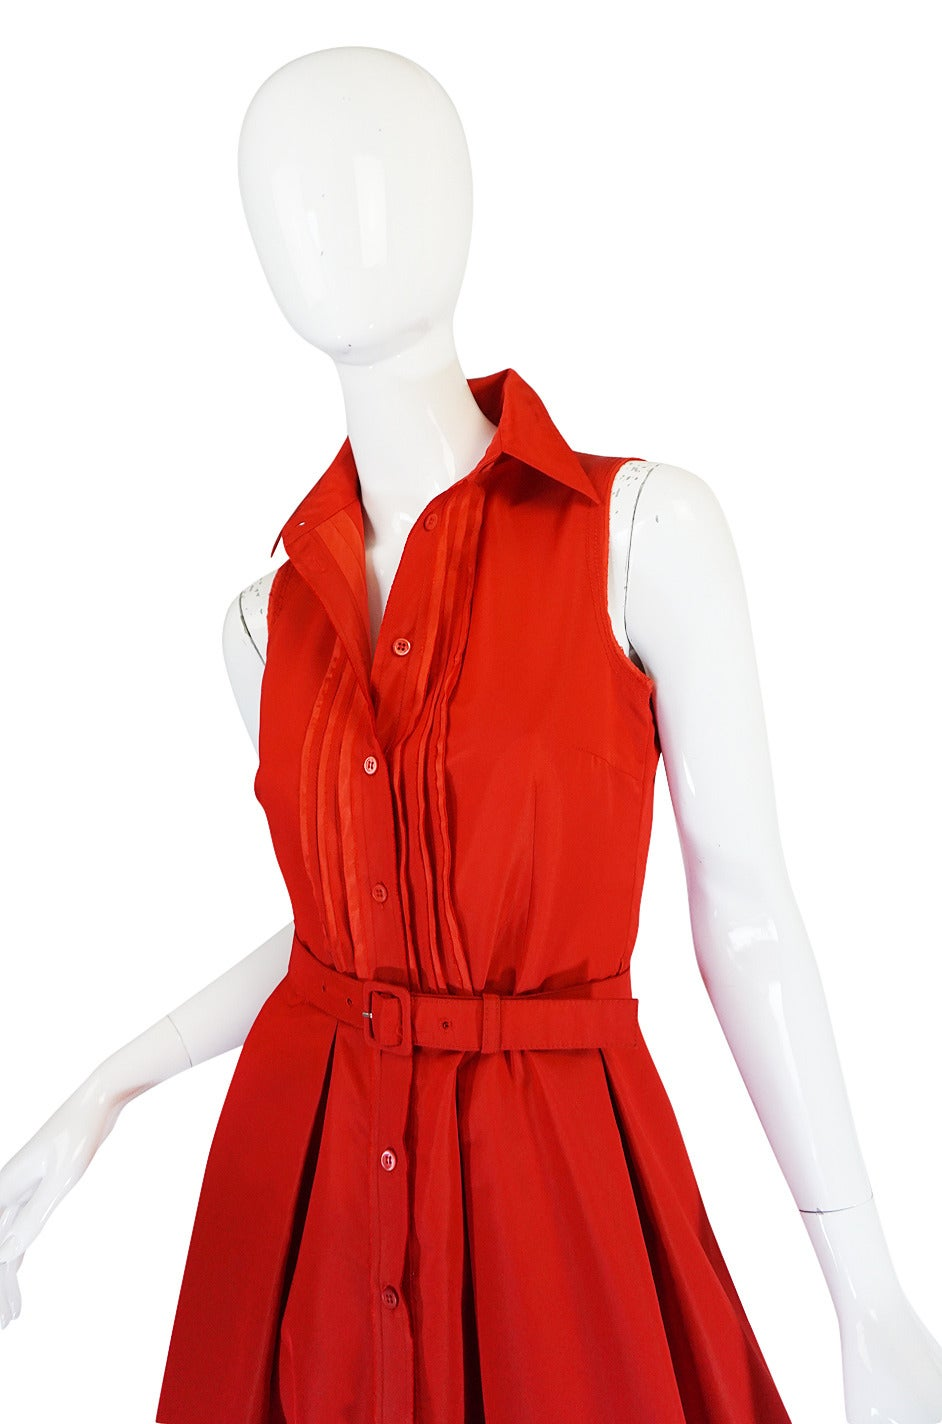 Women's 2000s Chic Prada Red Taffeta Button Front Day Dress For Sale